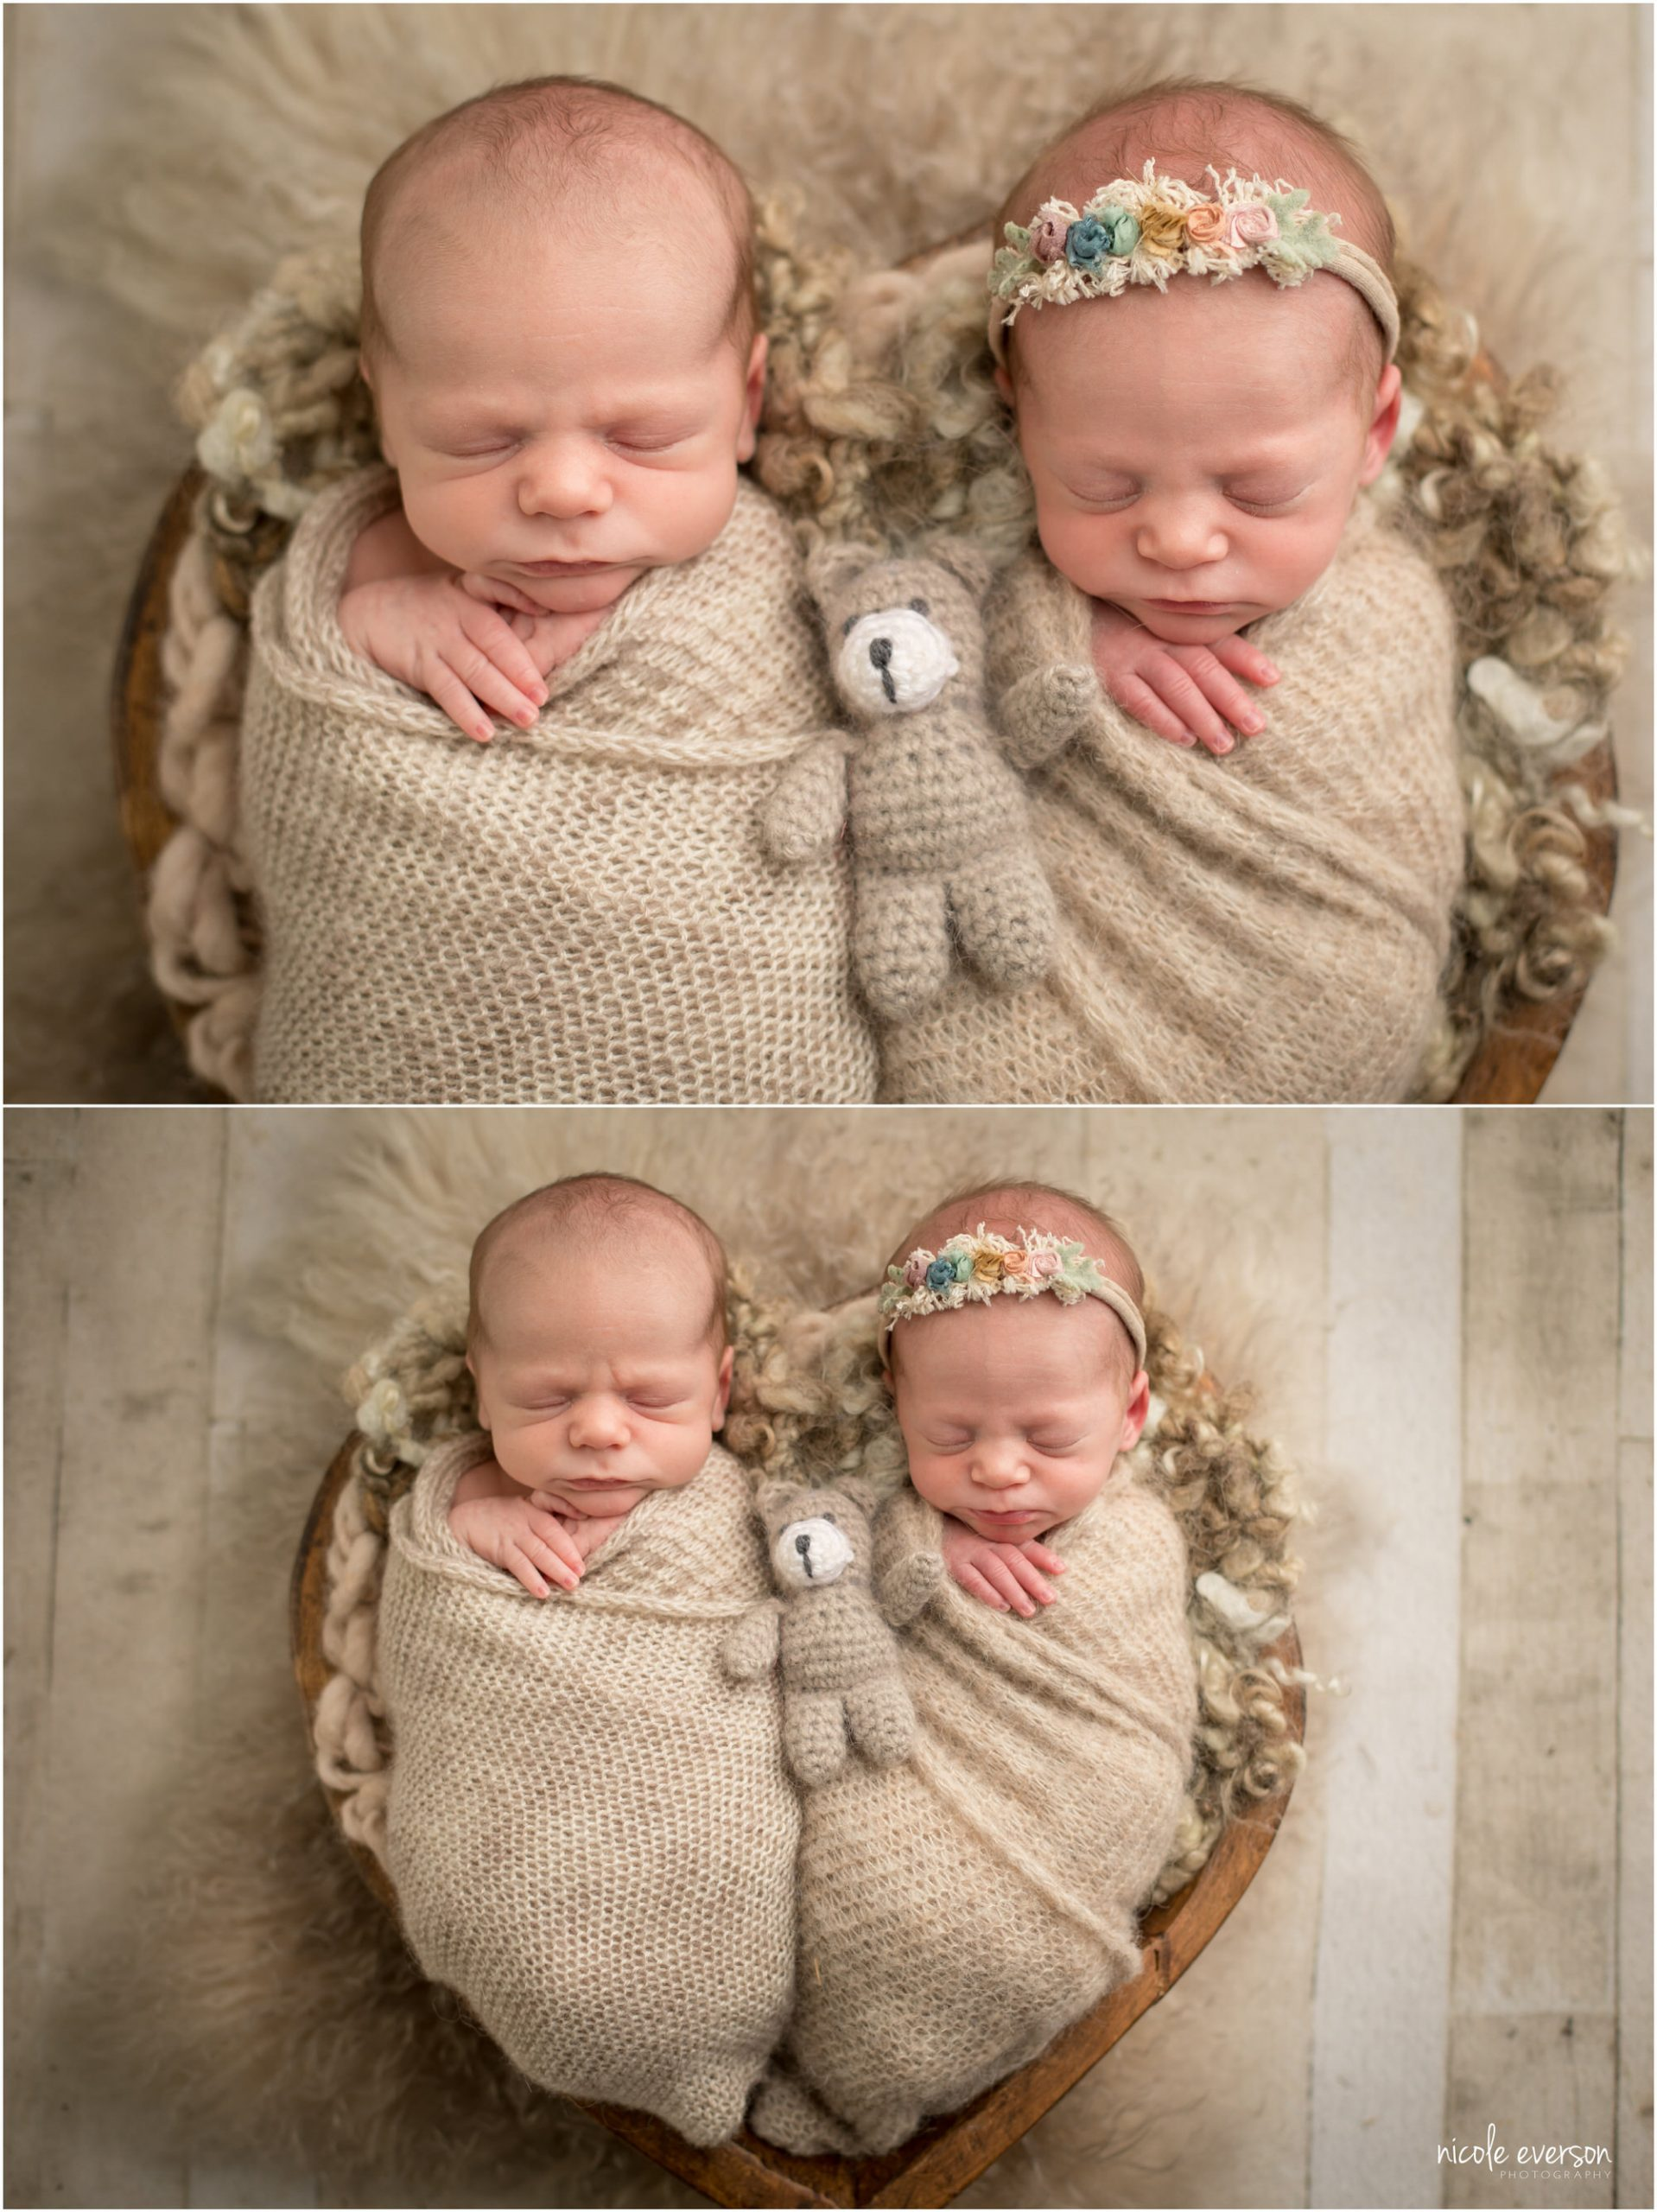 Newborn twins wrapped in tan blankets at Nicole Everson Photography, Destin Newborn Photographer.